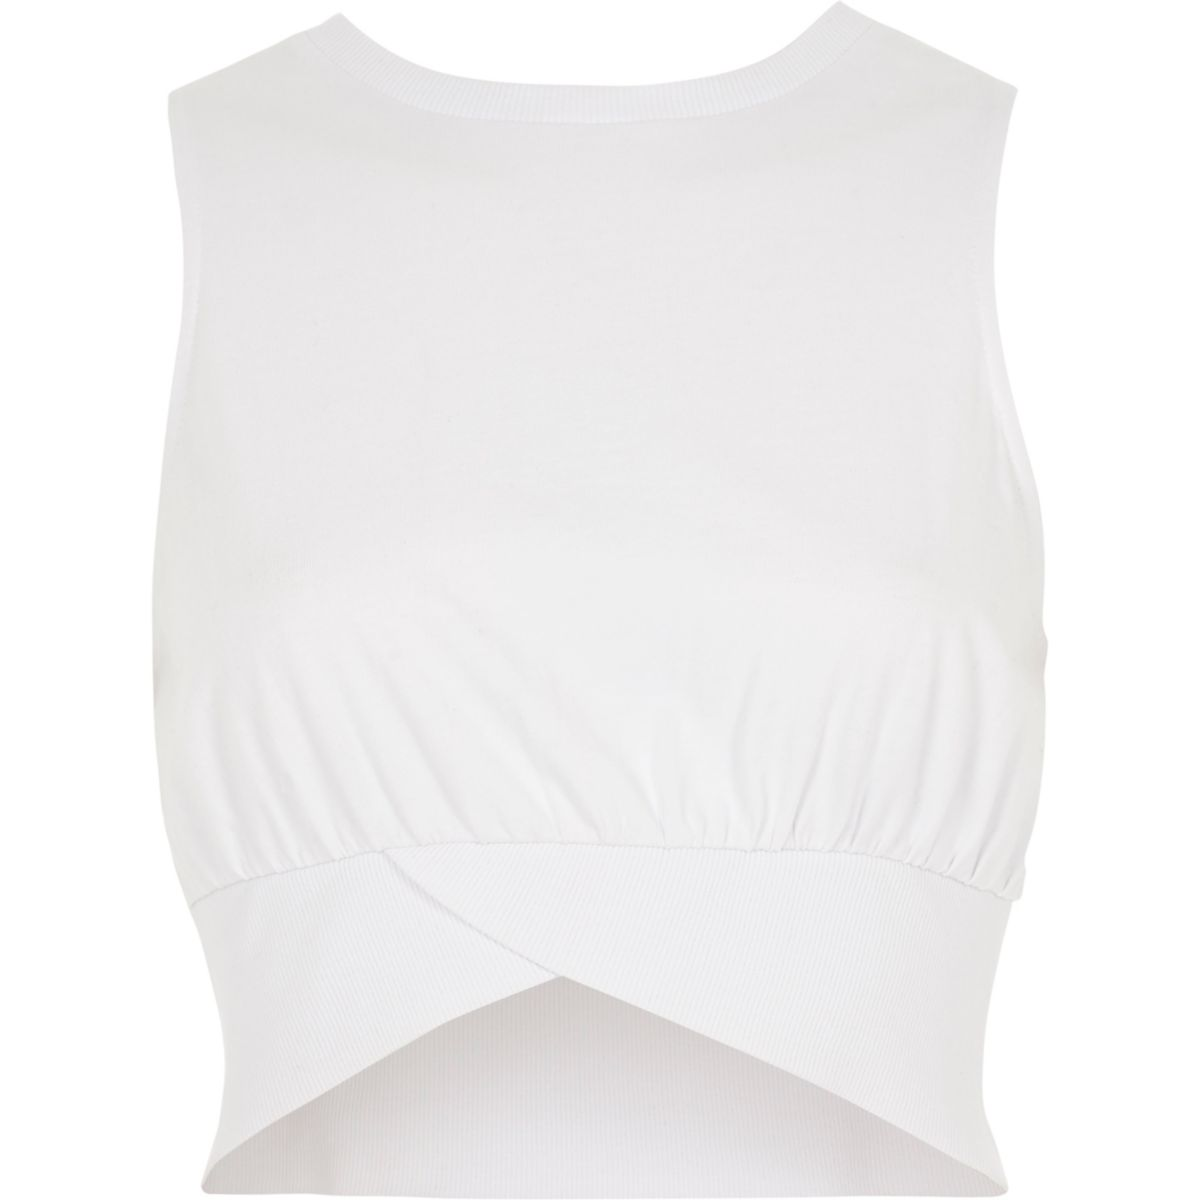 White sleeveless rib crop top